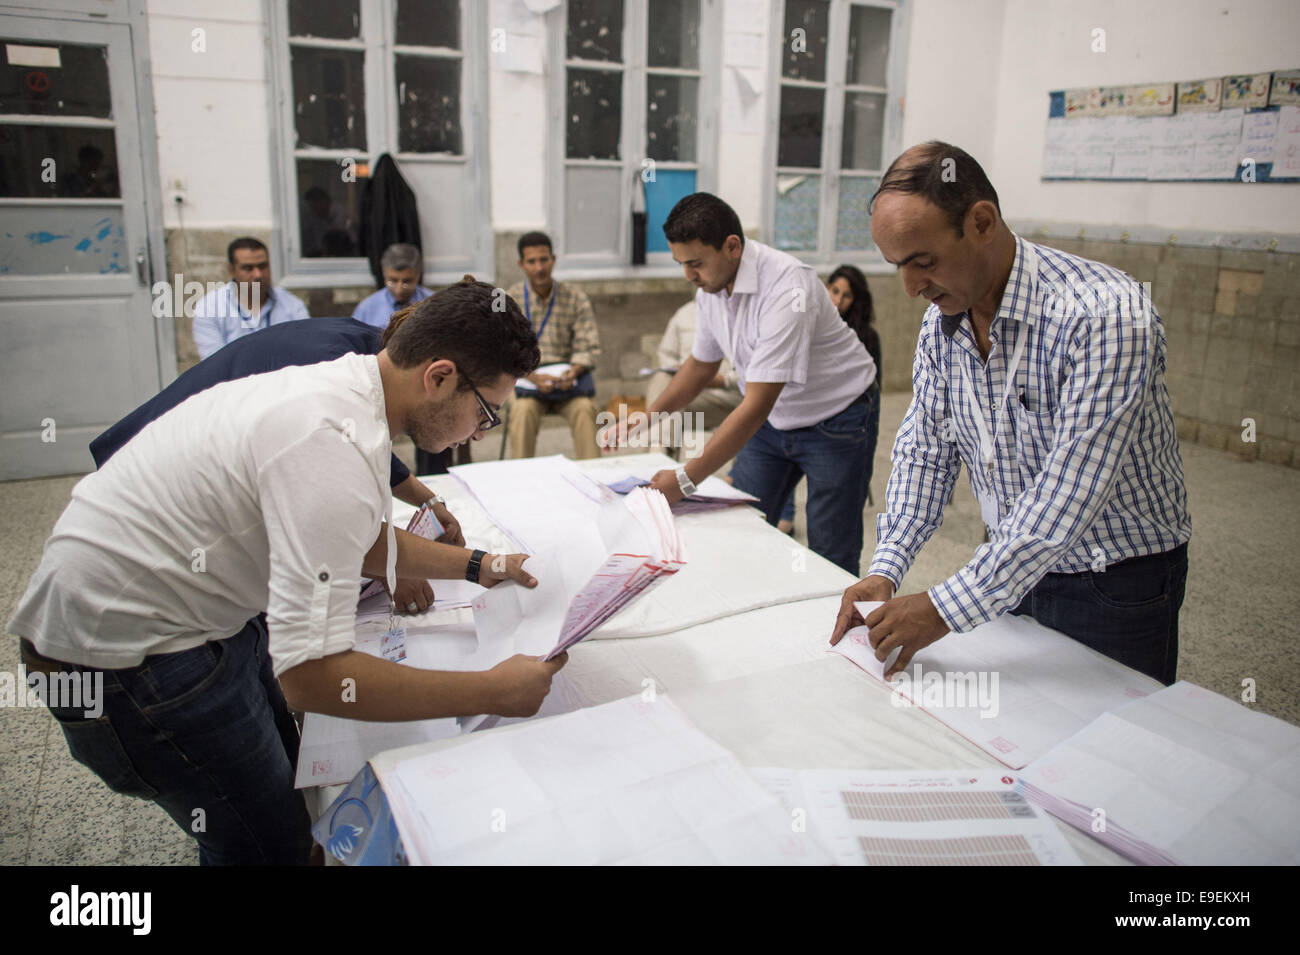 Tunis, Tunisia. 26th Oct, 2014. Electoral workers count ballots at a polling station in Tunis, capital of Tunisia, - Stock Image